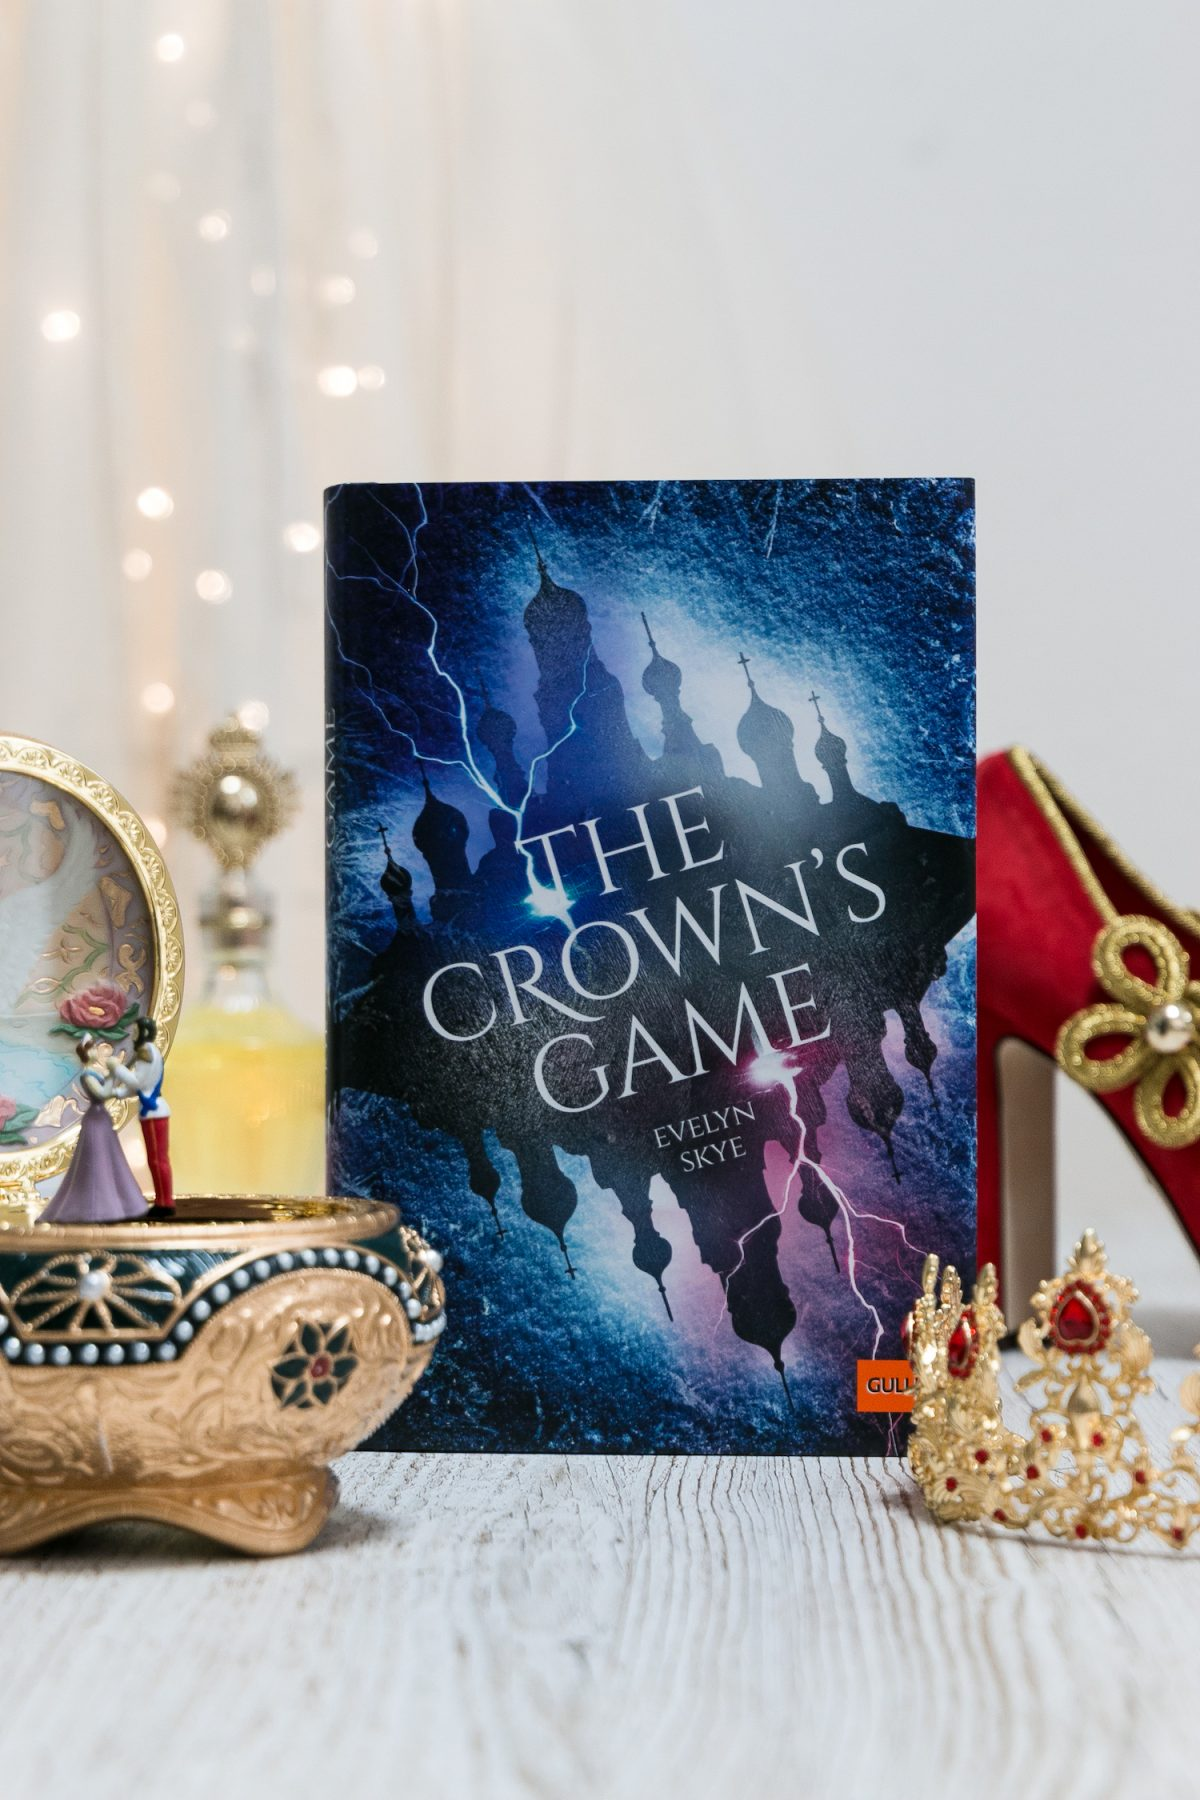 The Crowns Game Evelyn Skye deutsch